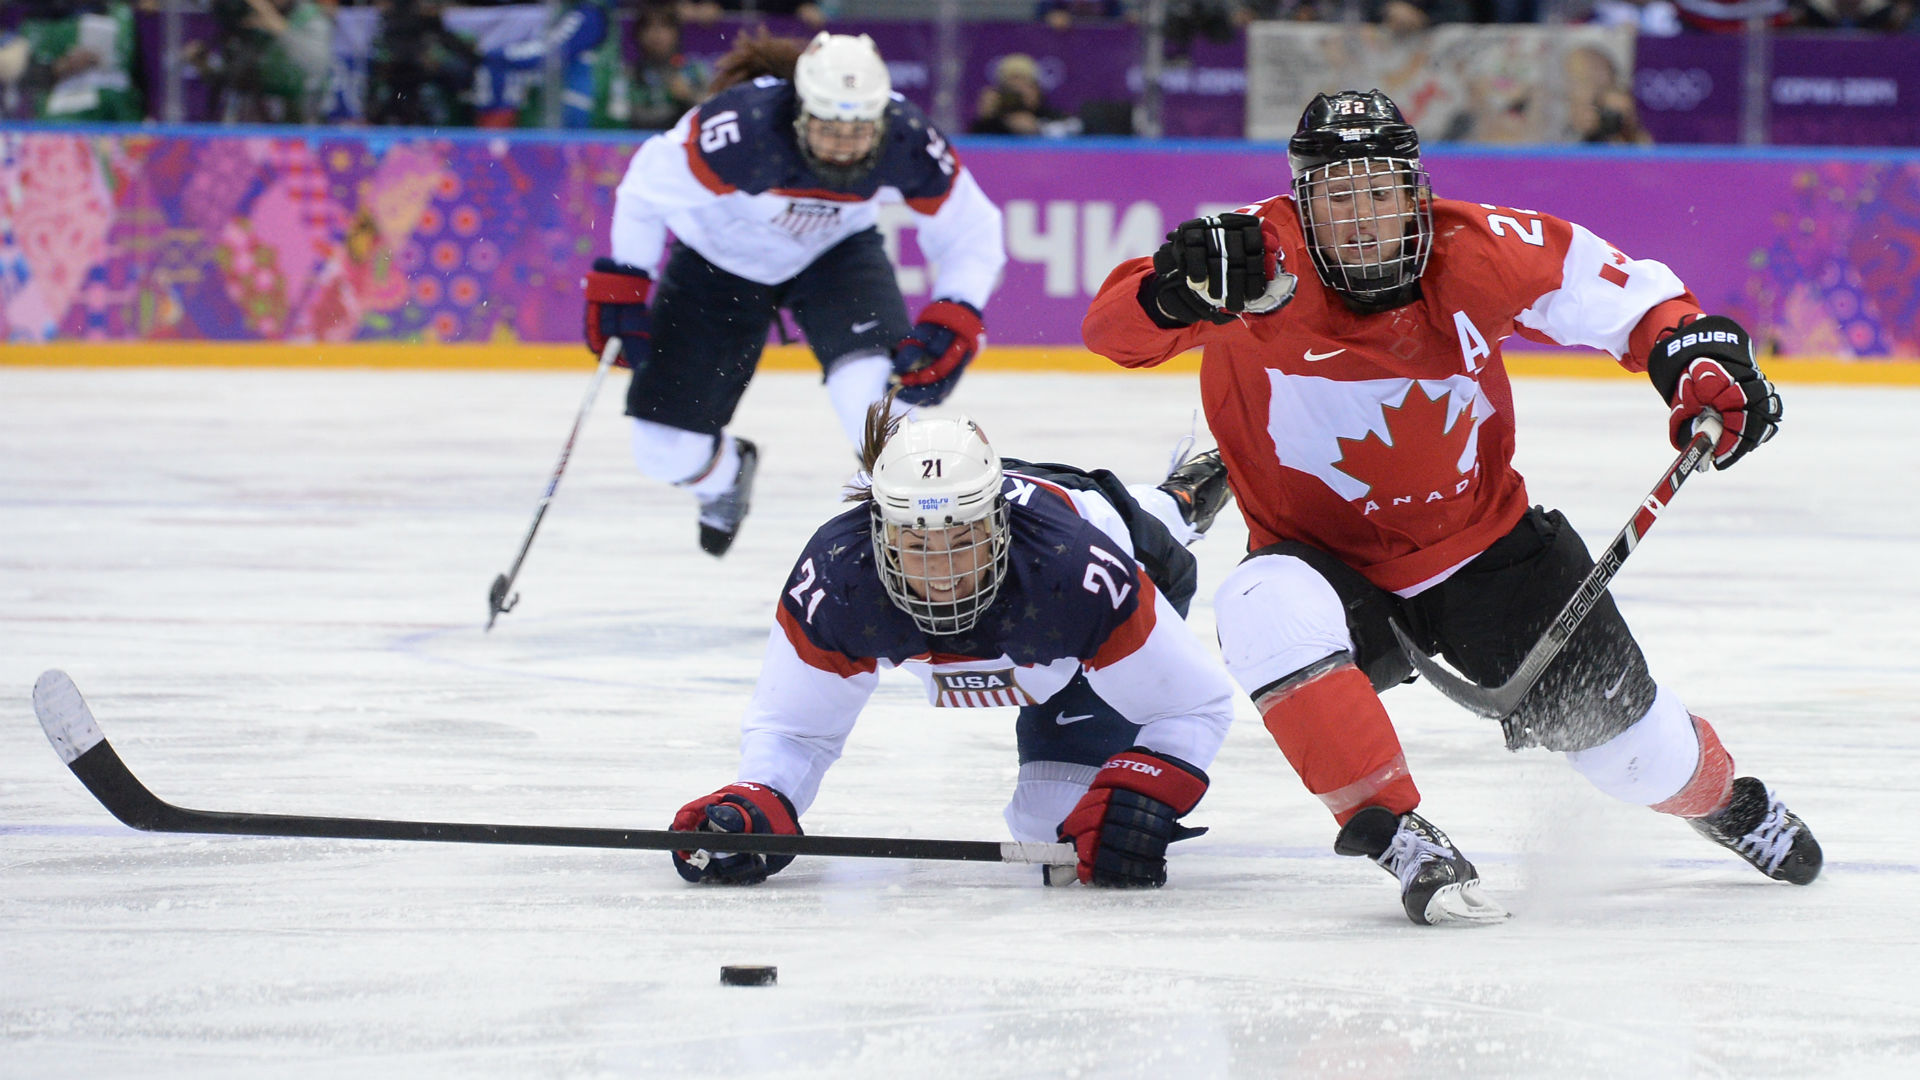 Winter Olympics 2018: Hilary Knight's golden redemption tour takes her to Pyeongchang - Athletics - Sporting ...